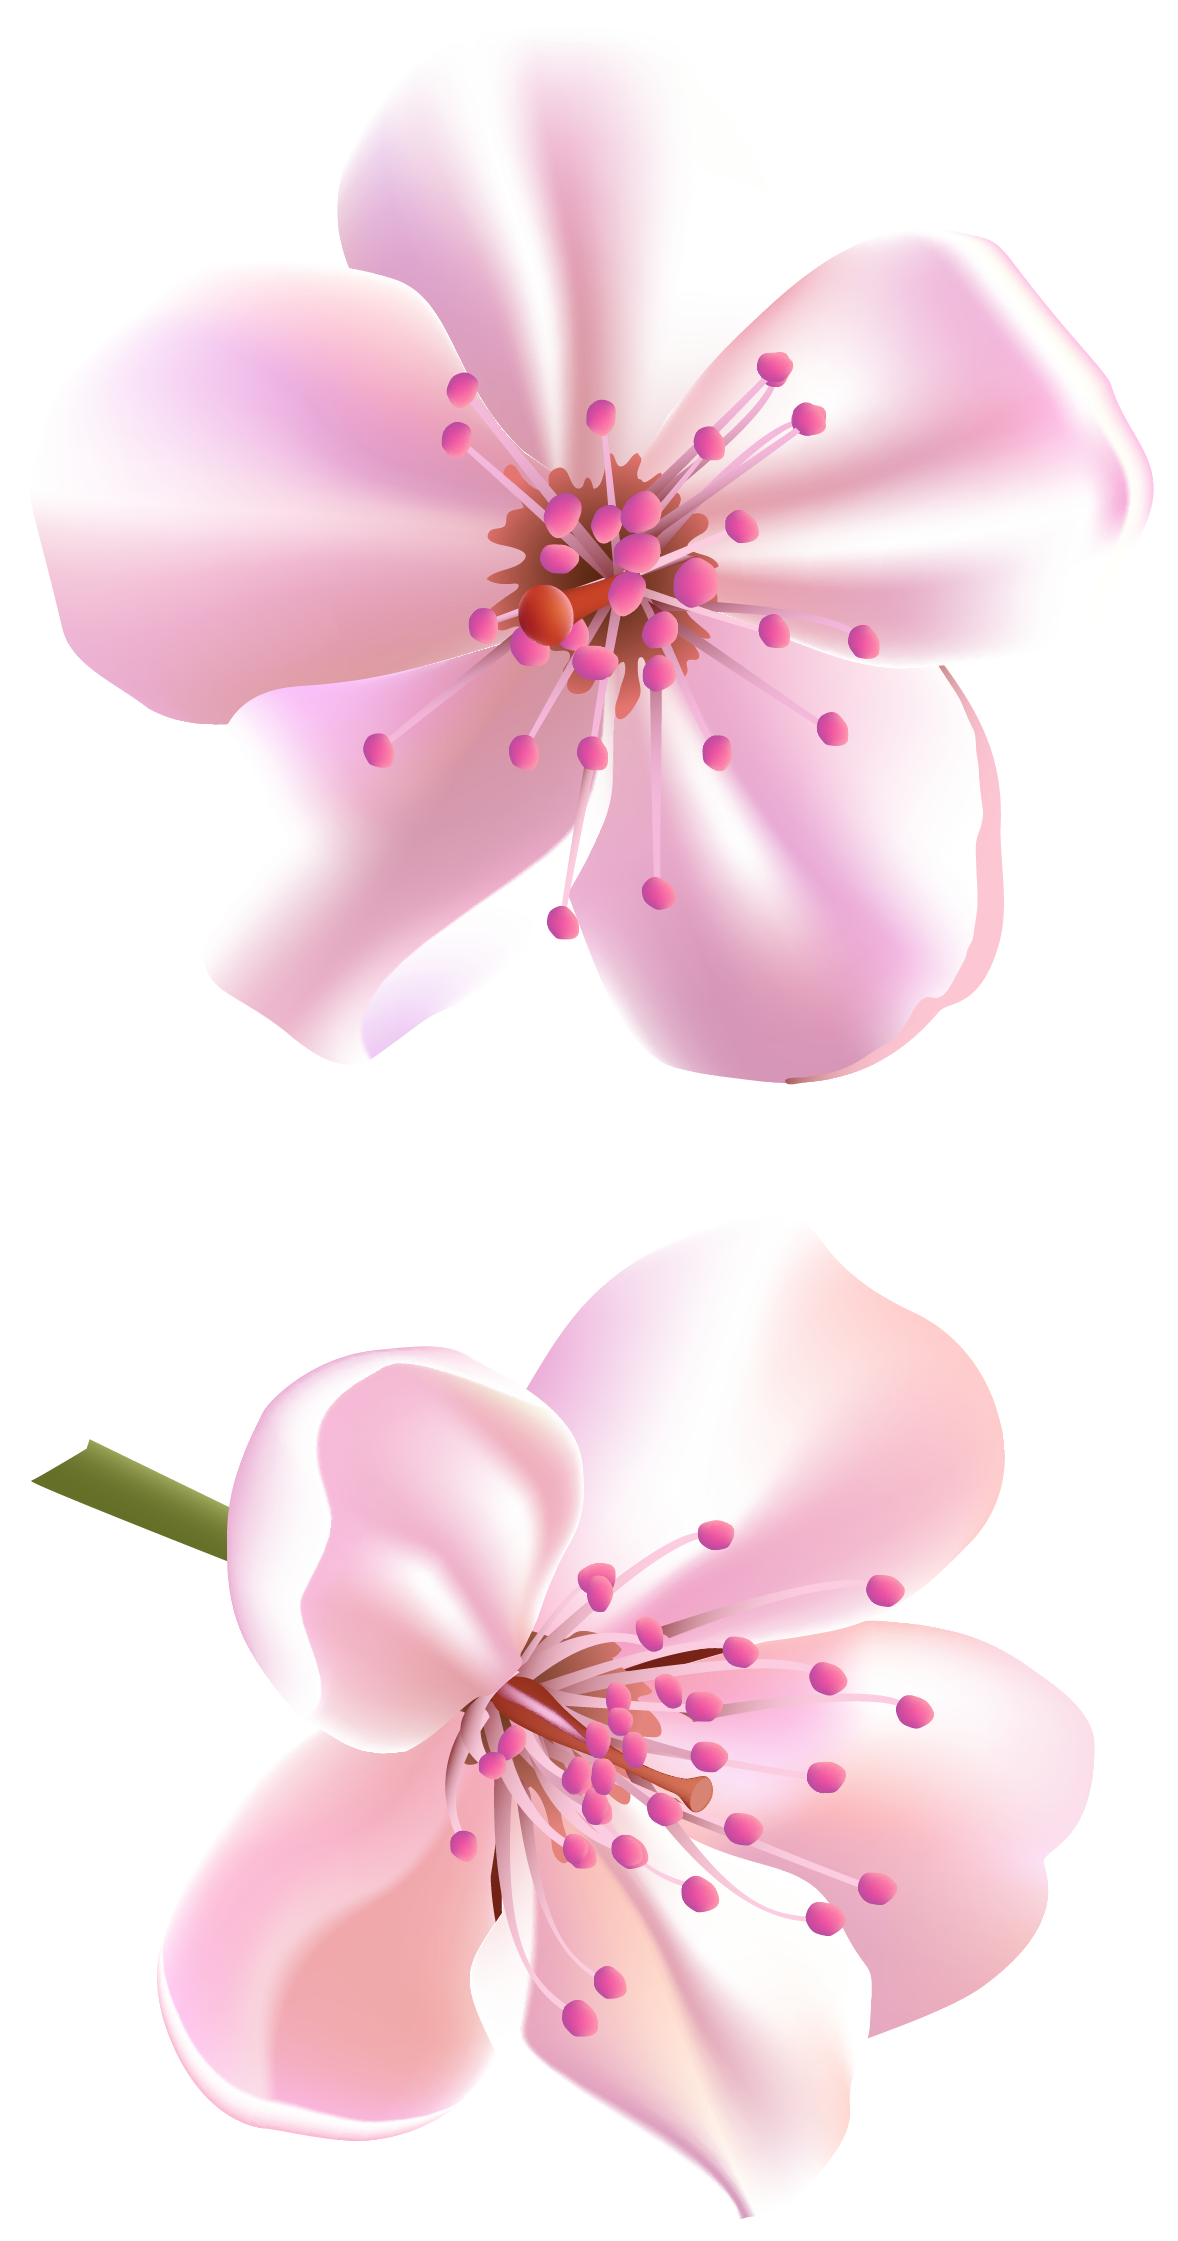 cherry blossom flower png